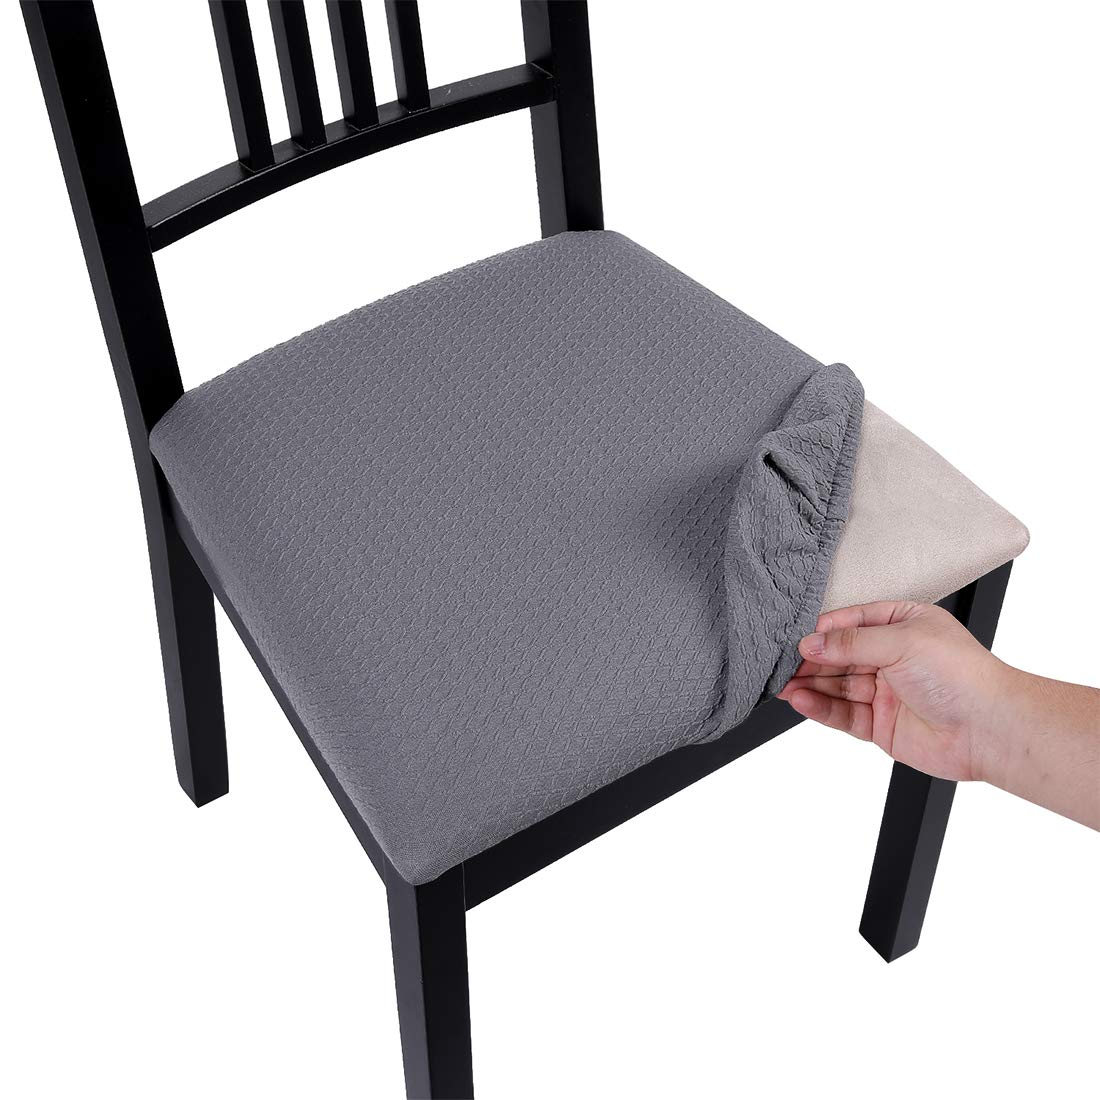 Homaxy Premium Jacquard Dining Room Chair Seat Covers, Washable Spandex Stretch Dinning Chair Upholstered Cushion Cover, Waffle Slipcover Protectors with Ties - Set of 4, Light Gray by Homaxy